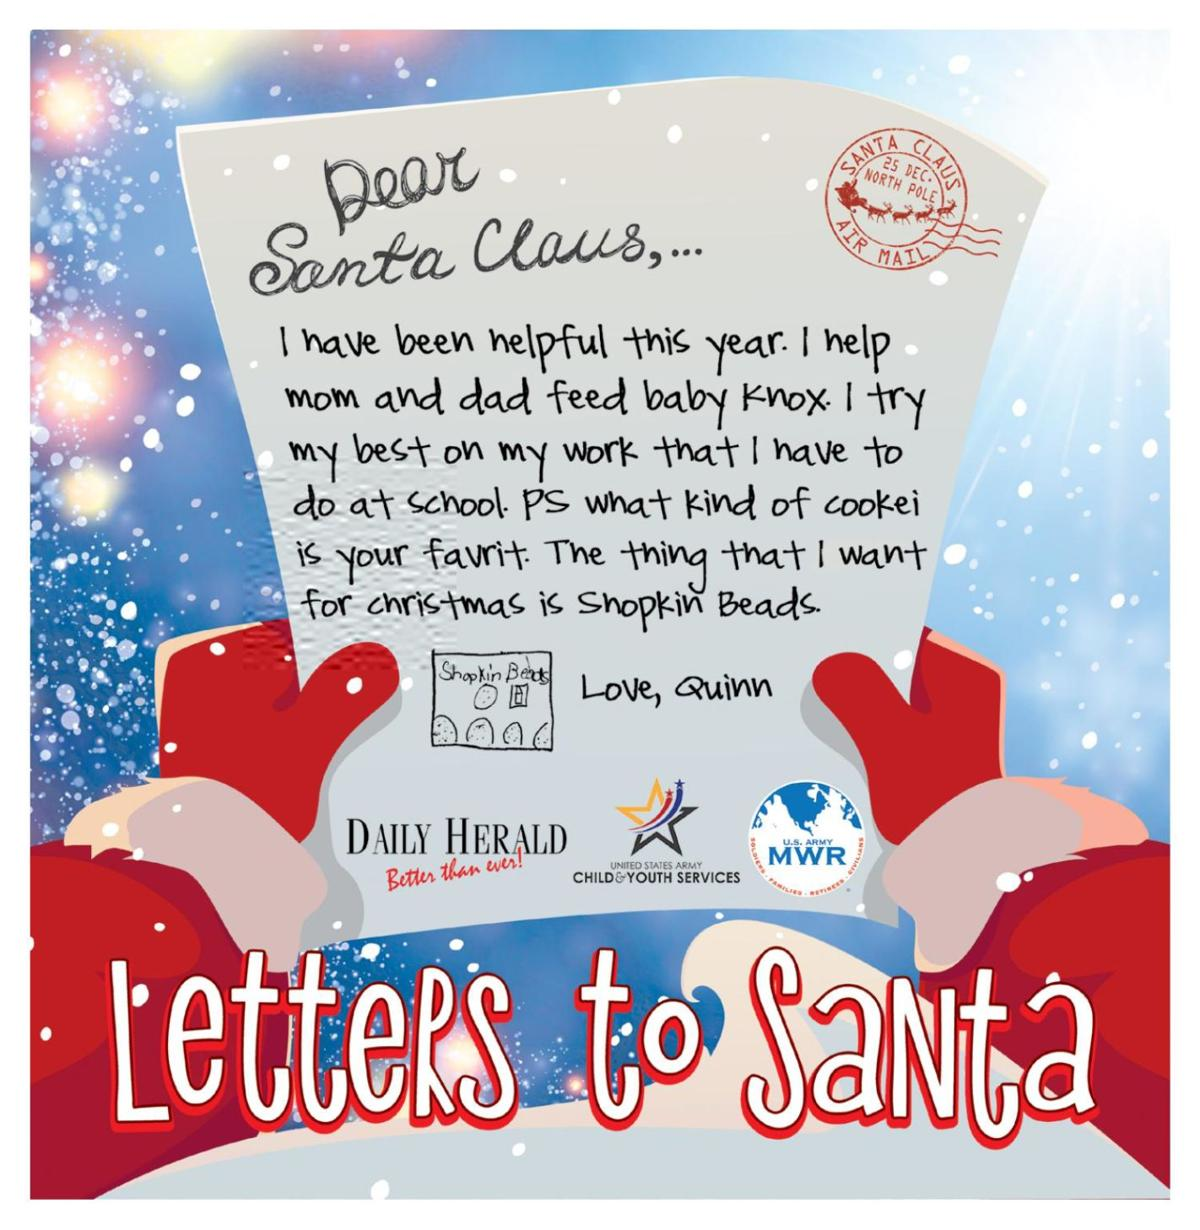 2018 Letters to Santa